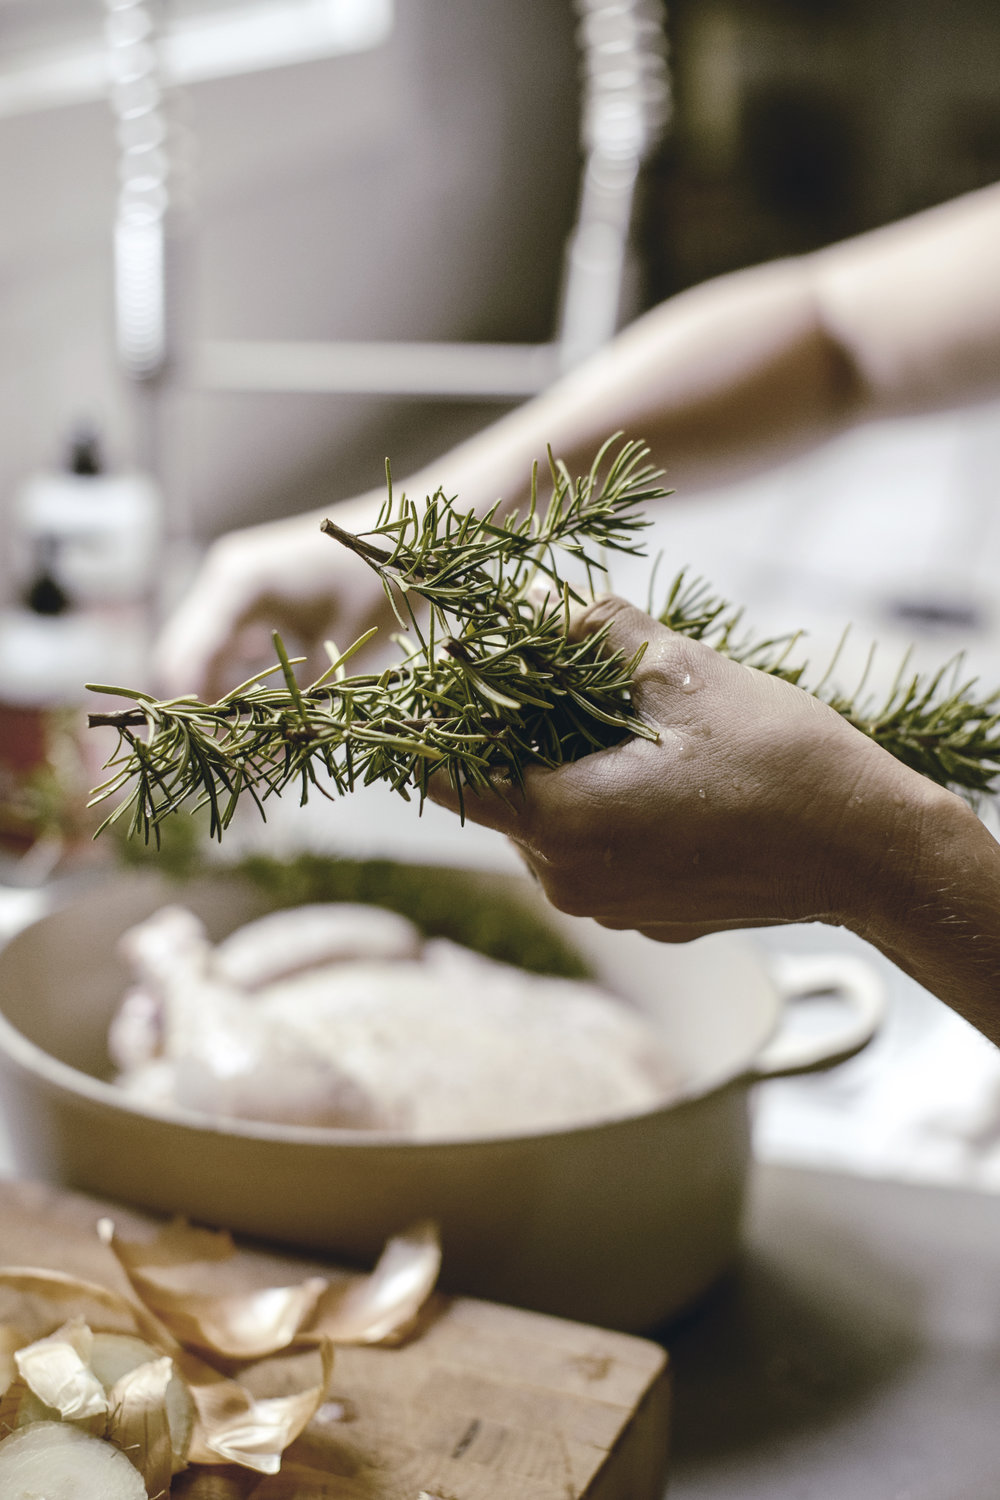 Seasoning a whole chicken with rosemary